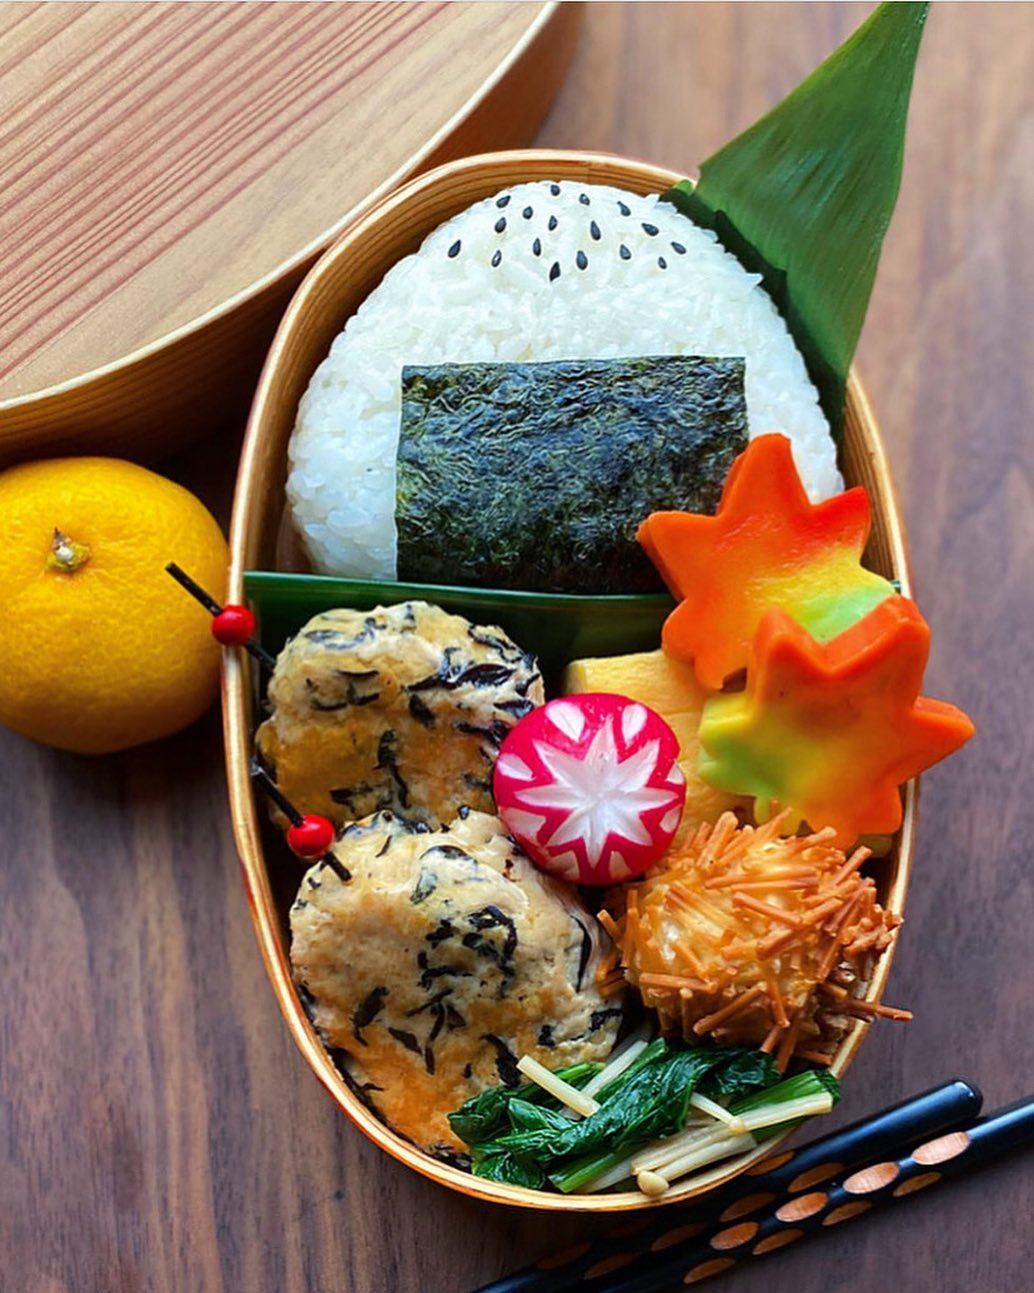 Autumn themed bento with onigiri rice ball